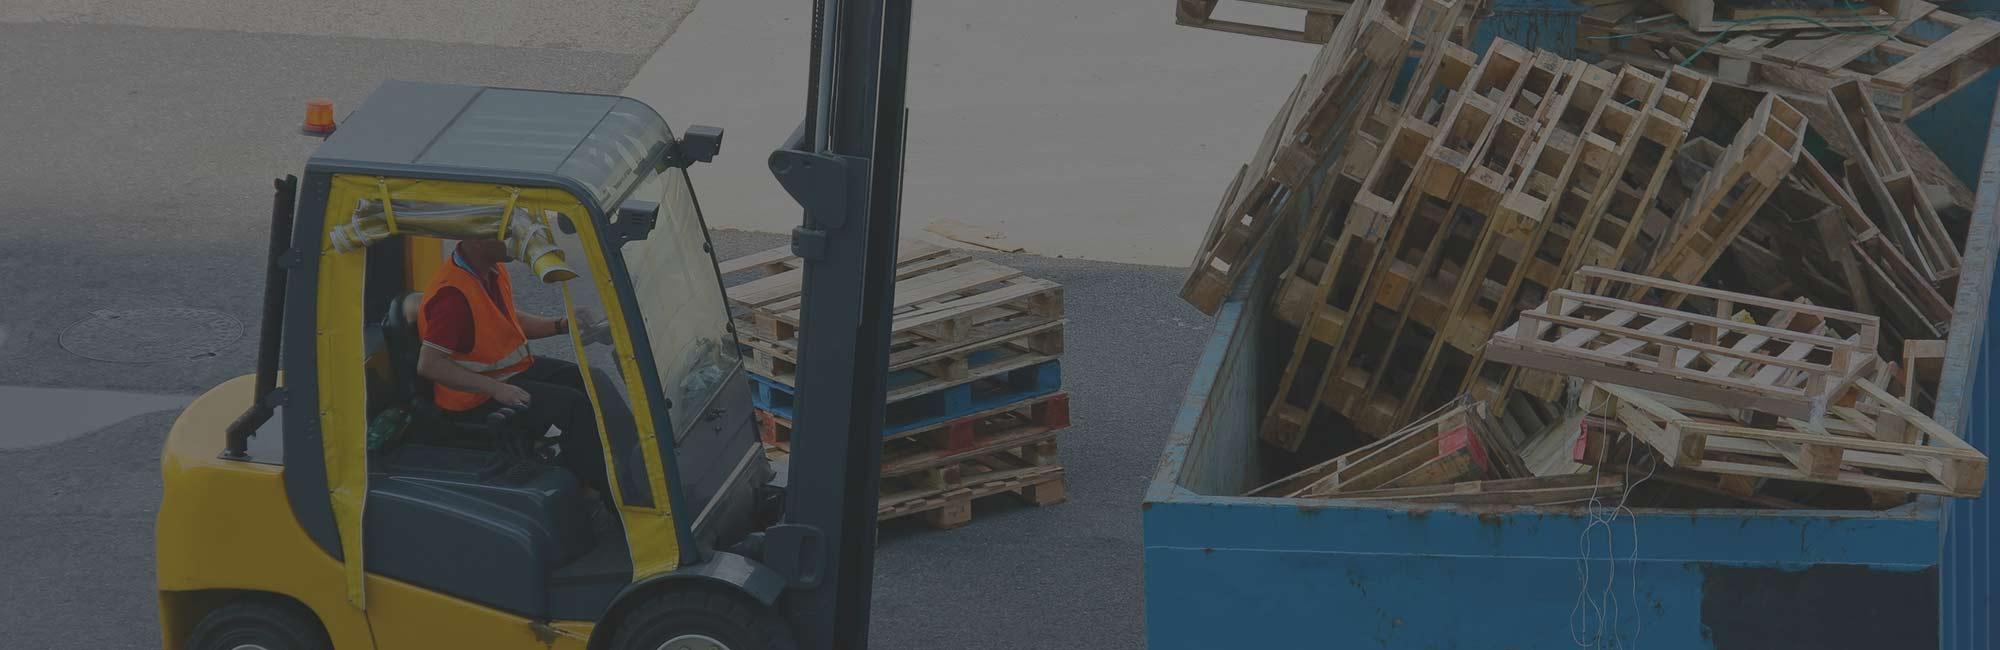 Pallet Collection London   Pallet Clearance Essex   Abbey ...